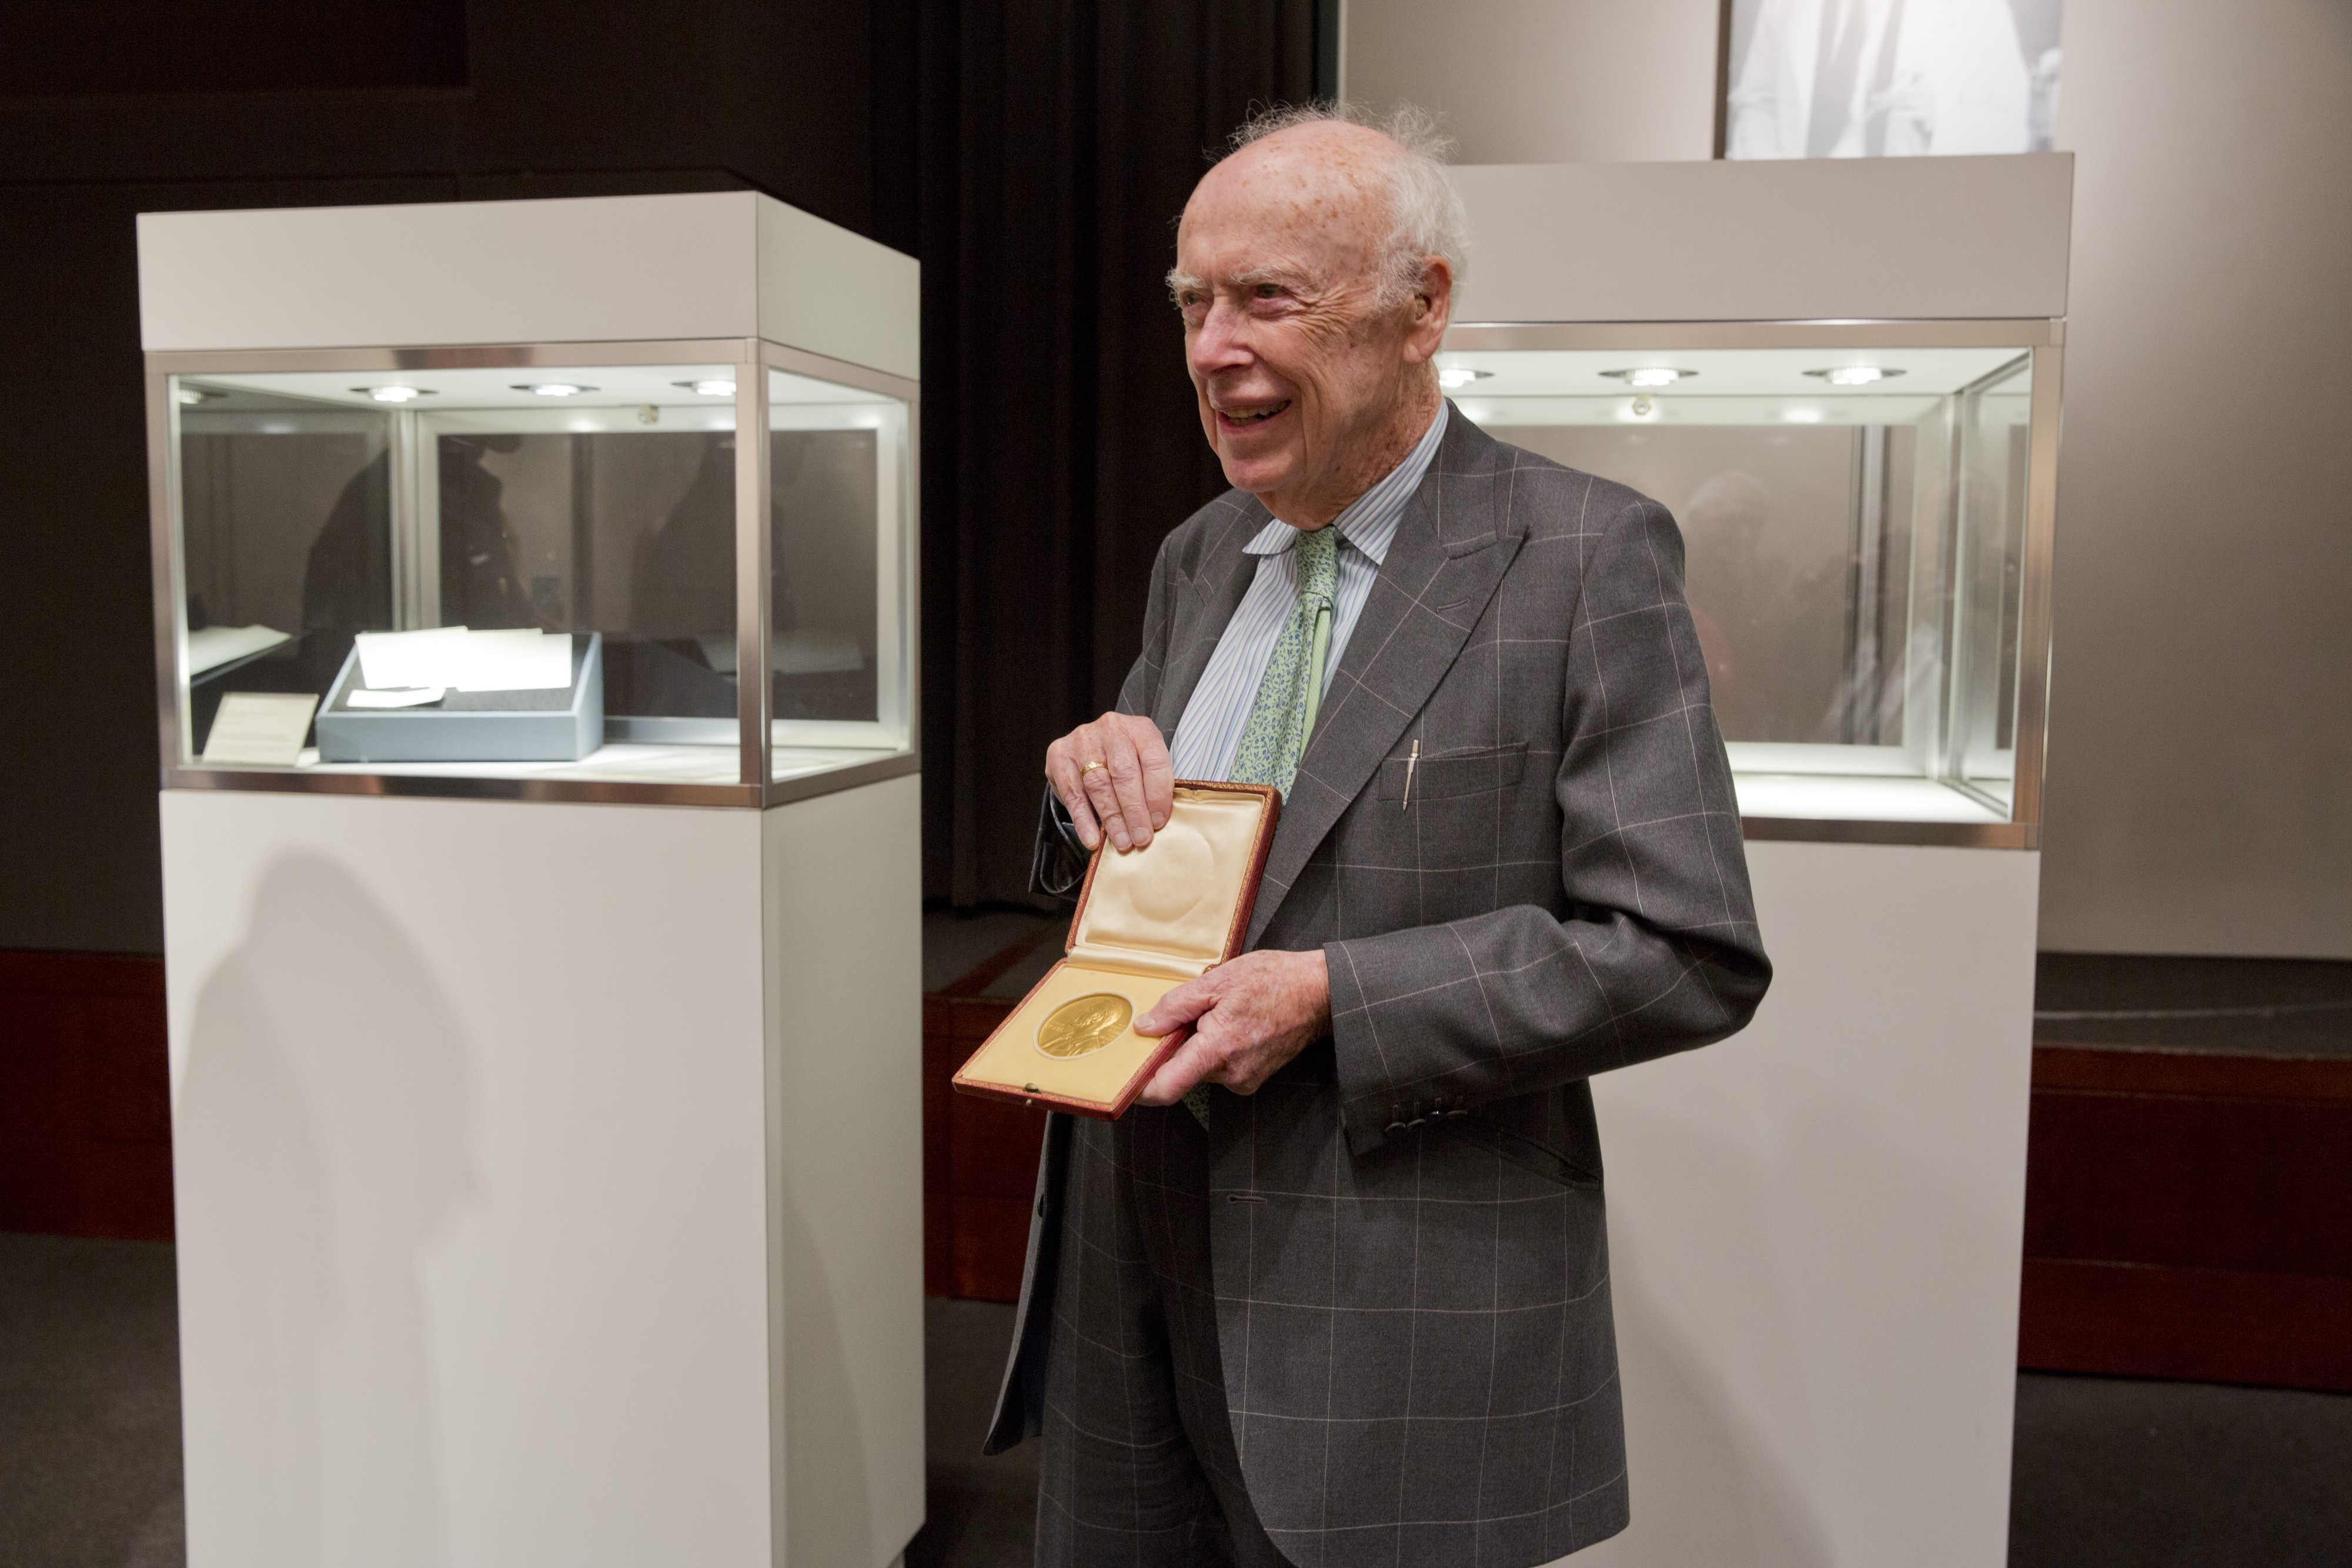 James Watson with medal.